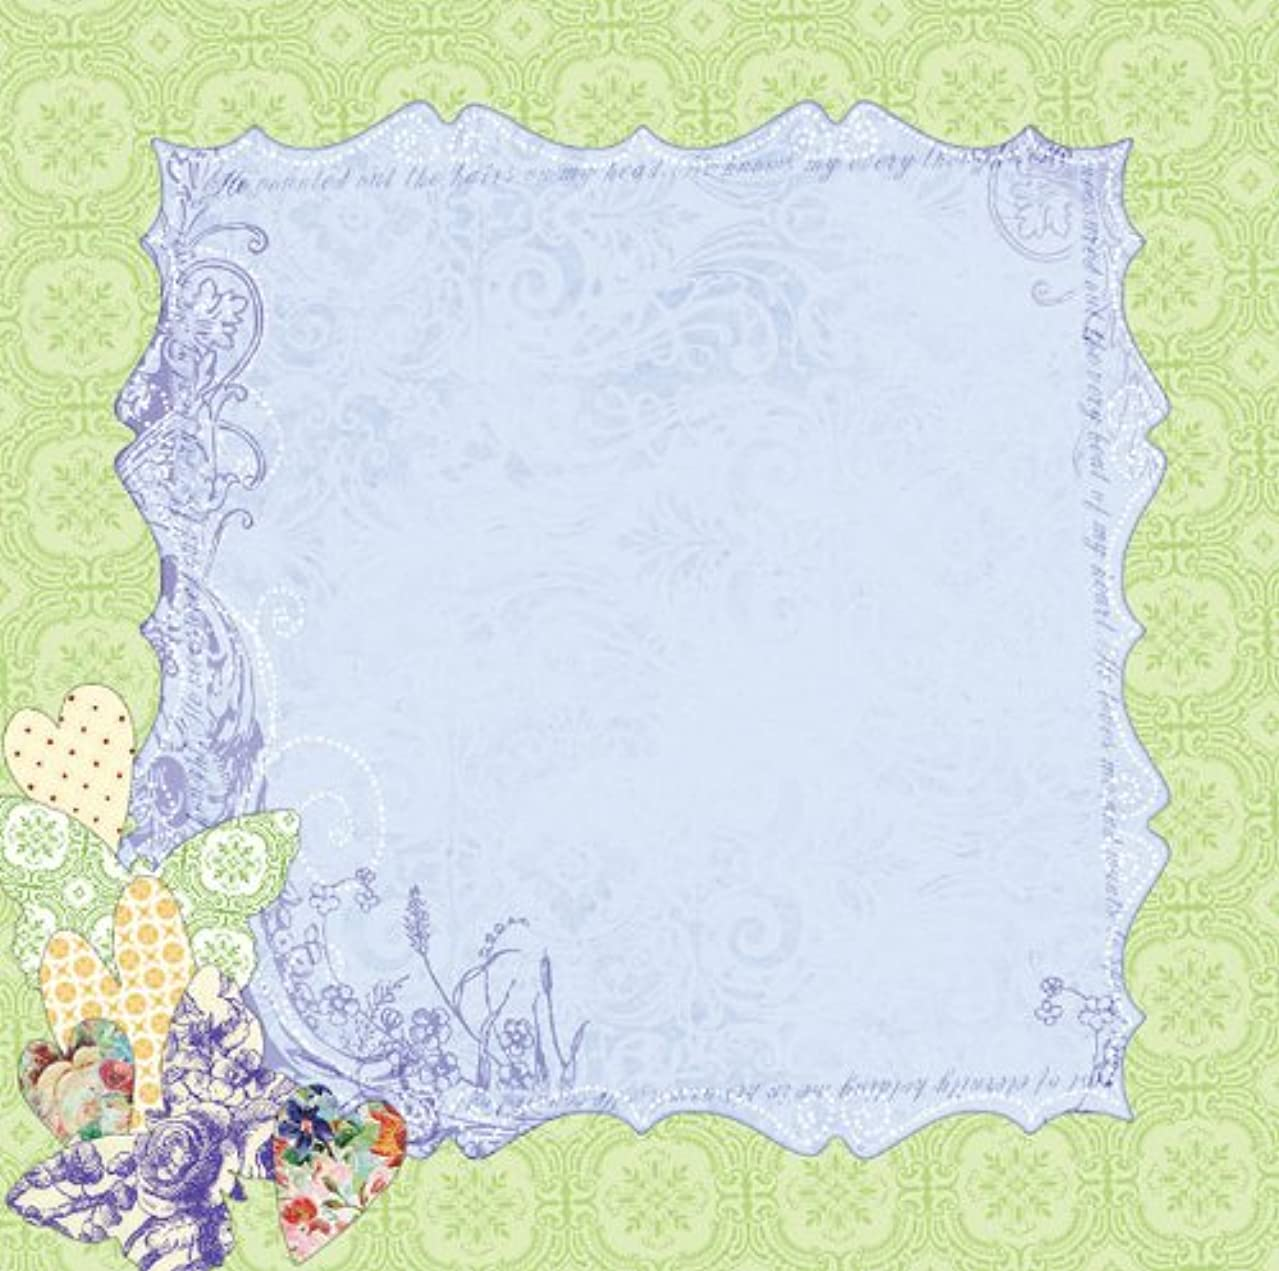 Prima 813291 12 by 12-Inch Art Stitched Mulberry Paper, Purple Hearts